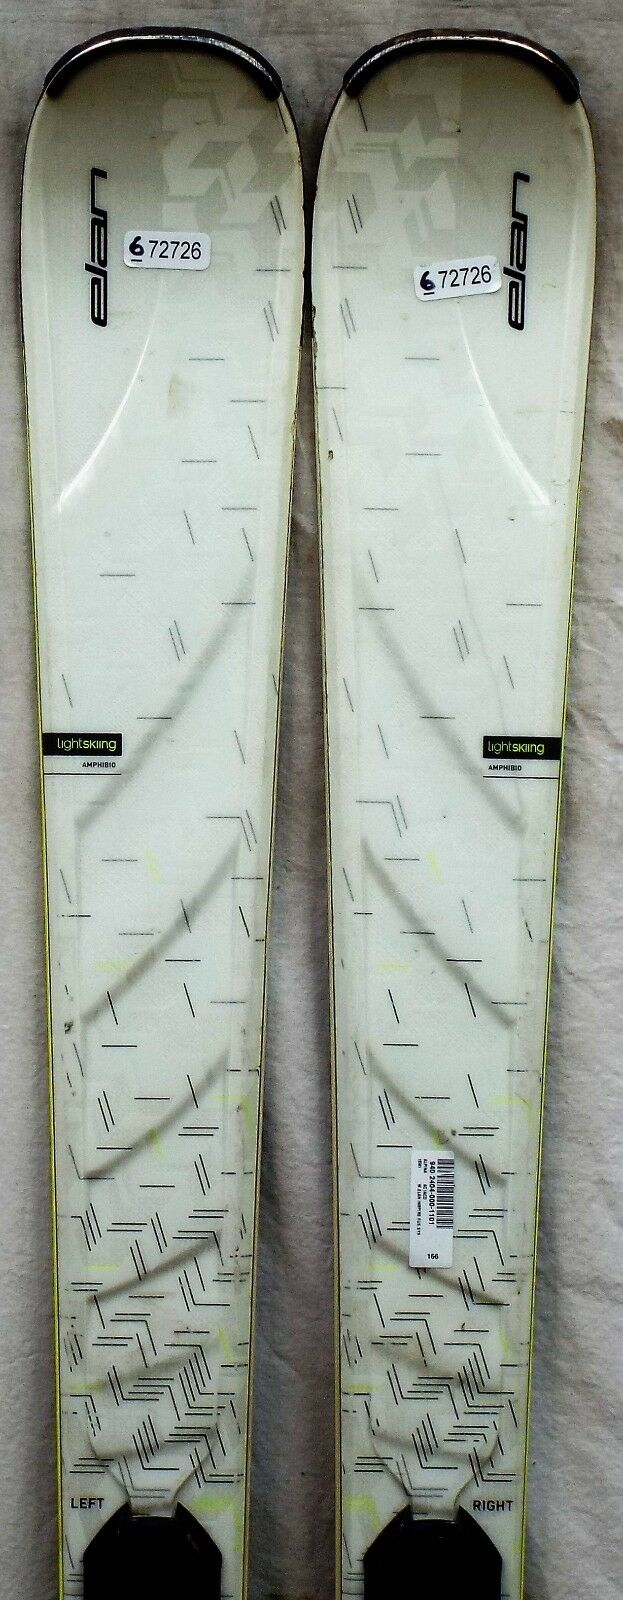 15-16 Elan Inspire  Used Women's Demo Skis w Bindings Size 166cm  with 100% quality and %100 service